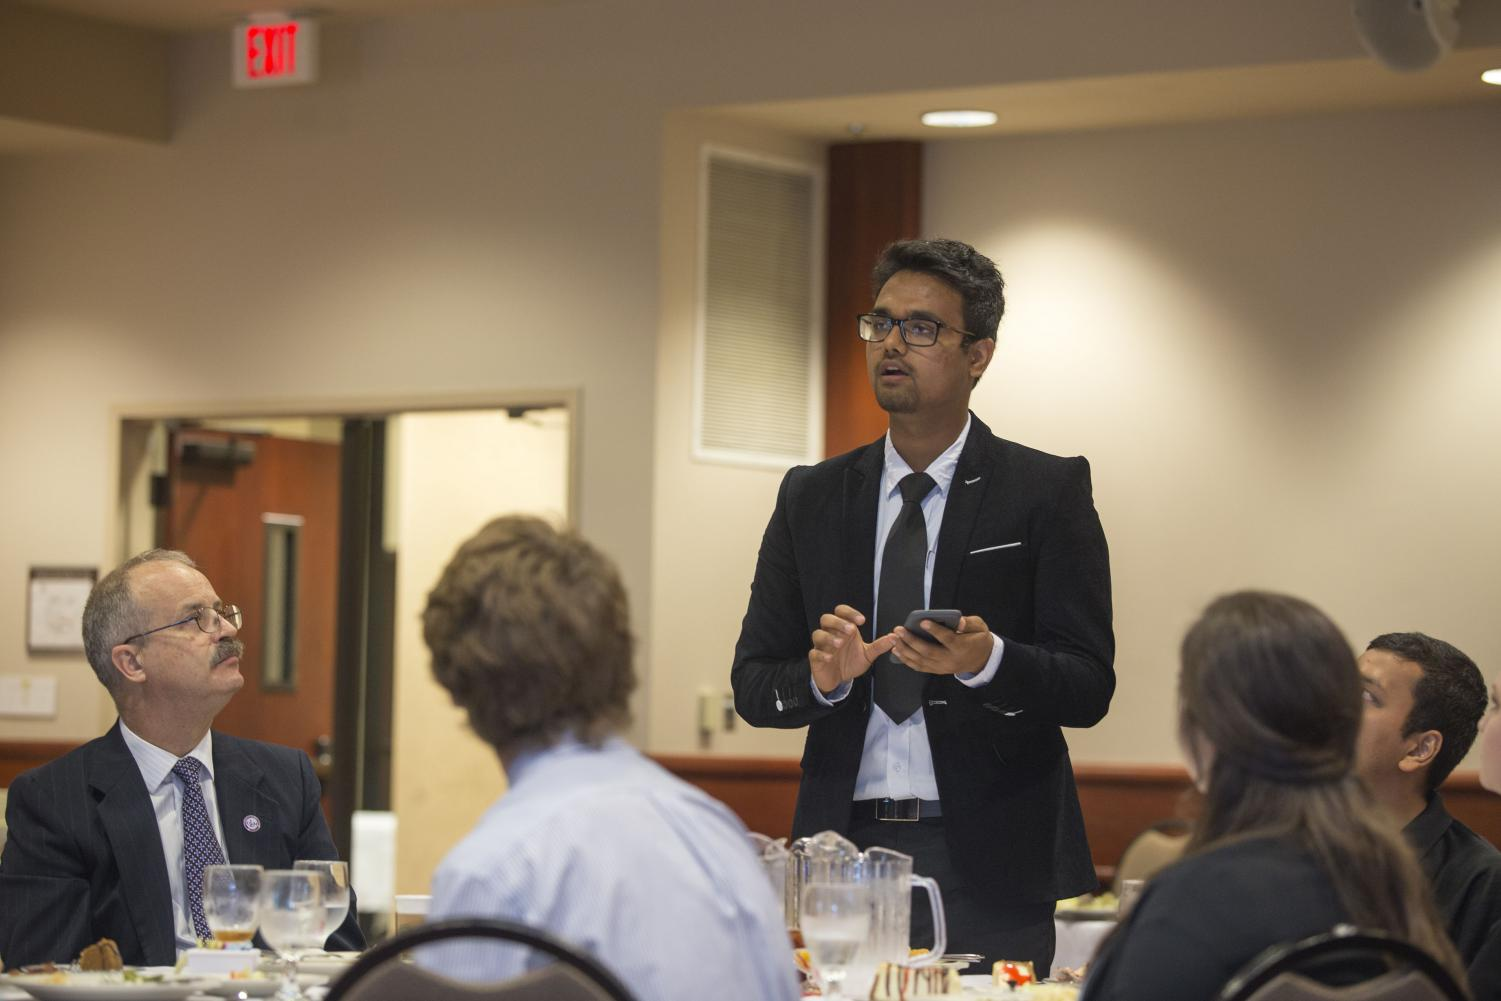 LET'S TALK: SGA Senator Sachin Thapa asks a question during Lunch with the President last week.